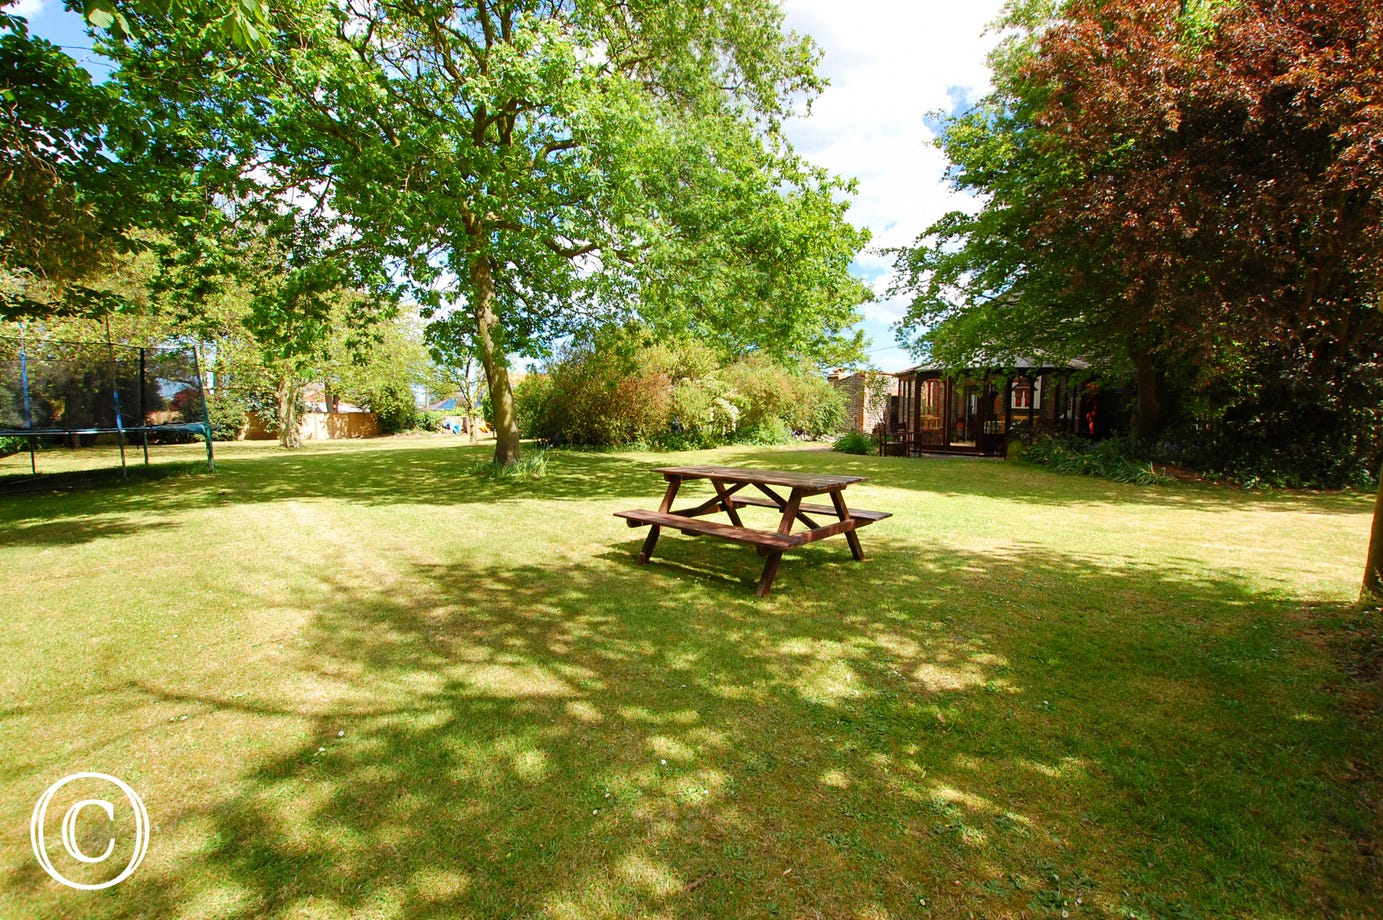 The garden is fully enclosed and has extensive lawned areas and established trees